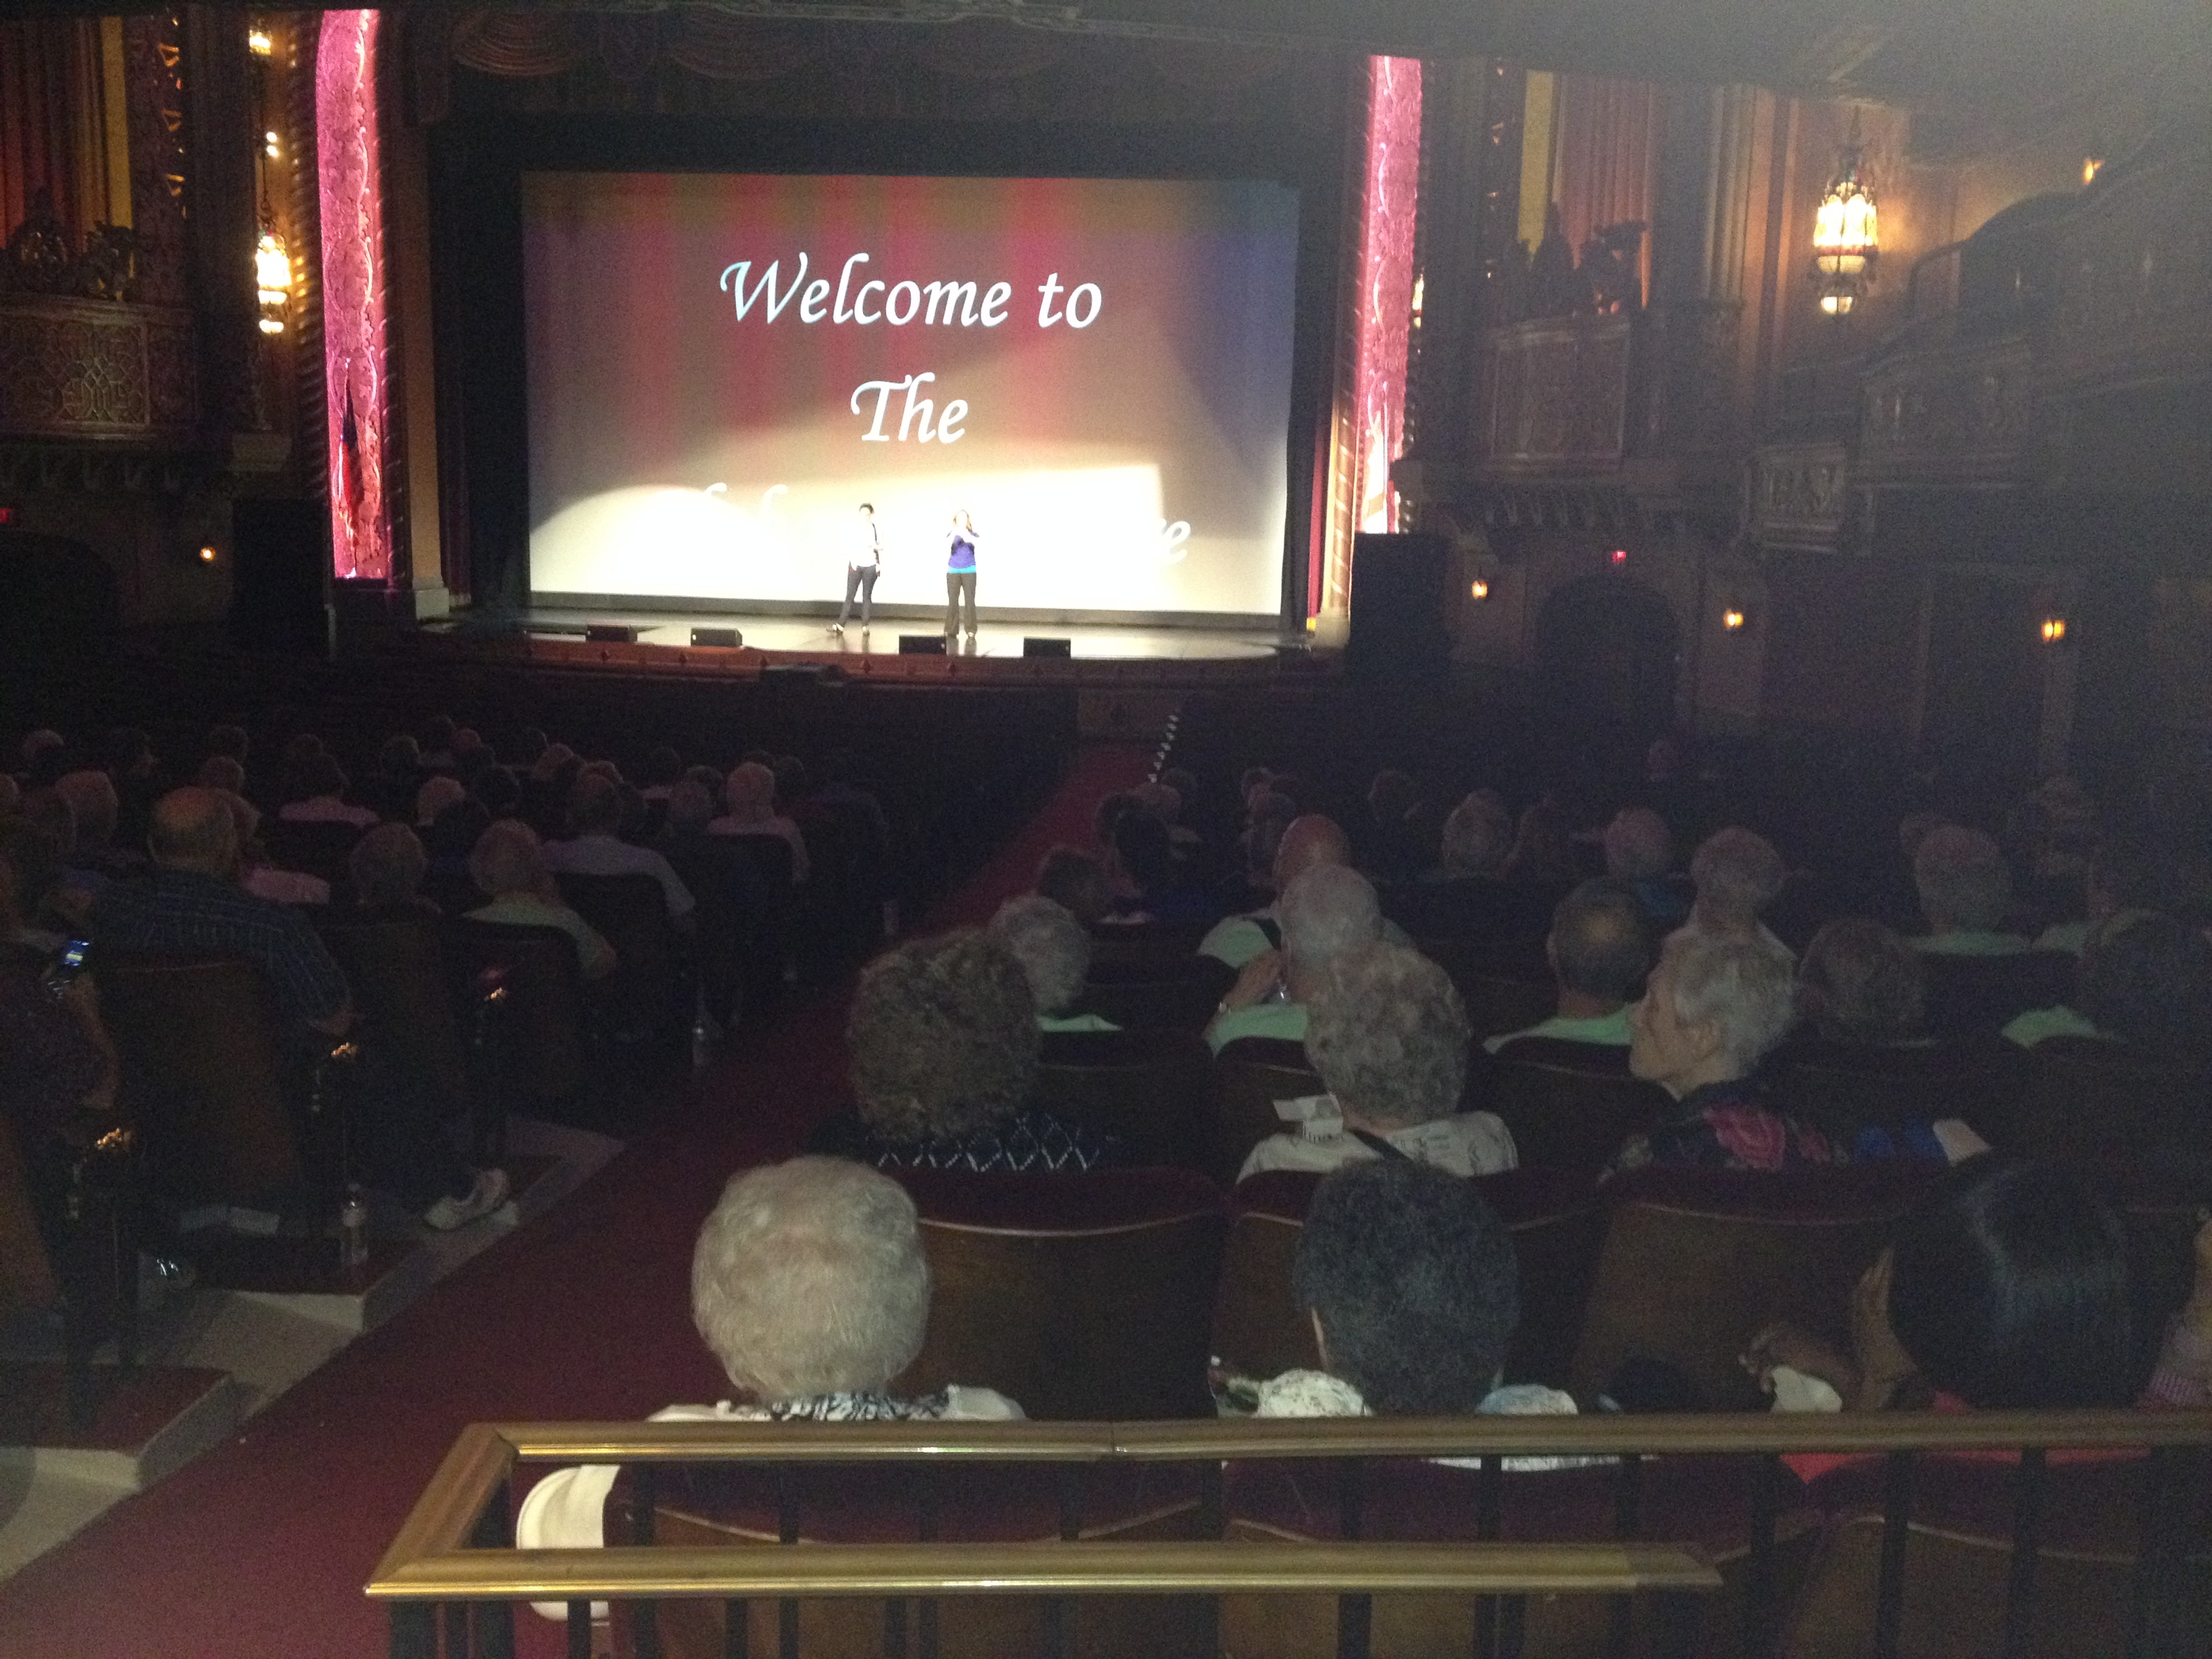 Image from inside the Alabama Theatre